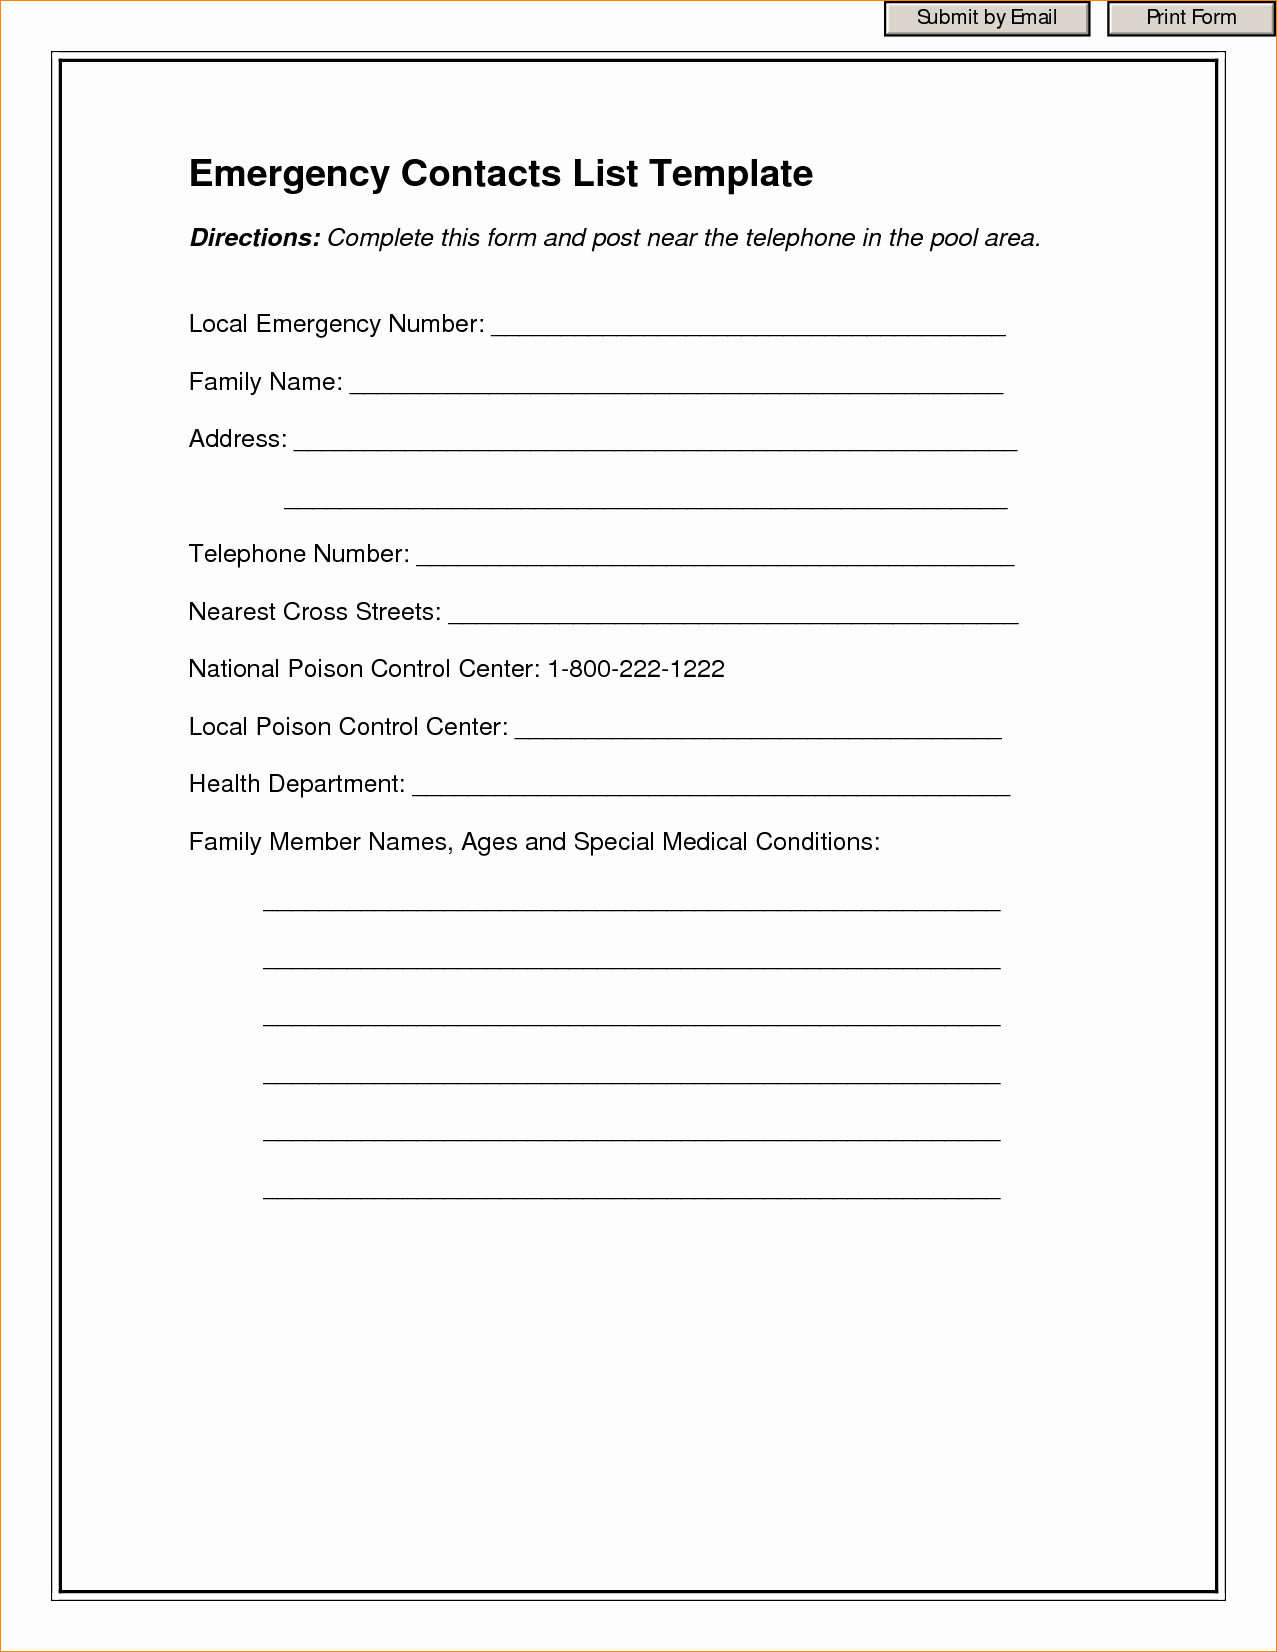 Template for Emergency Contact Information Fresh Contact Information Template Word Portablegasgrillweber